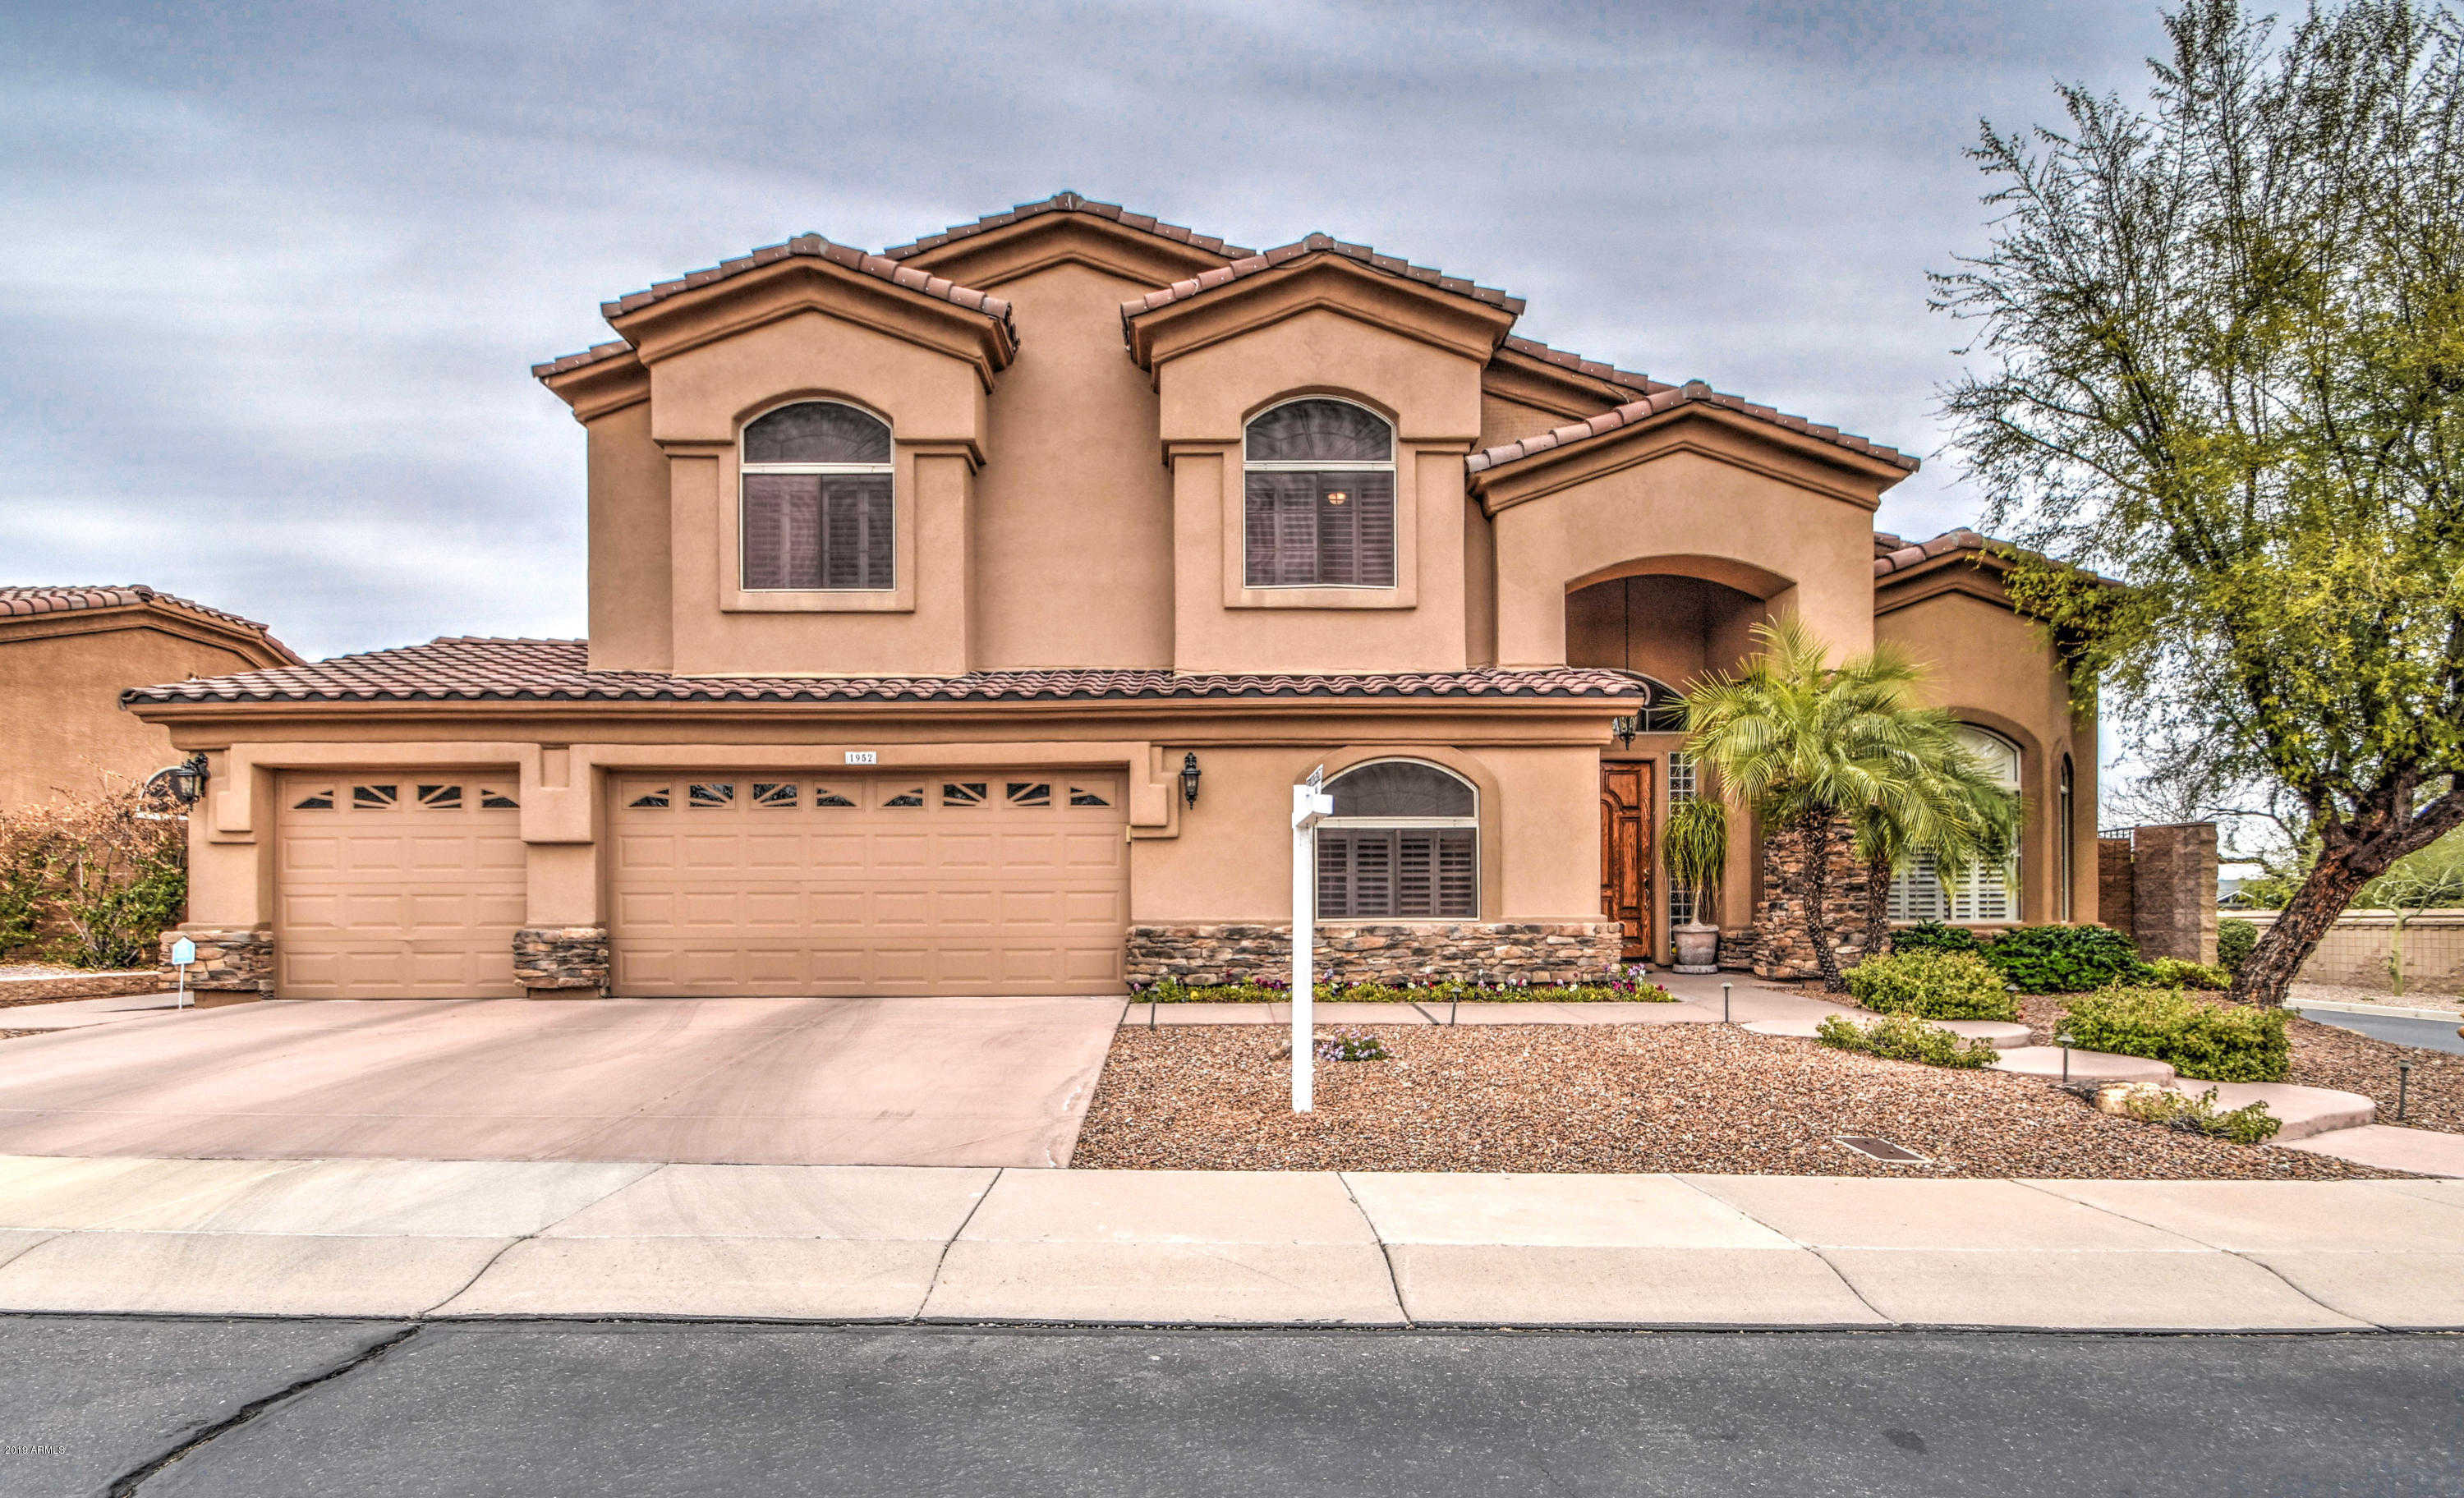 $525,000 - 5Br/3Ba - Home for Sale in Lookout Mountainside, Phoenix